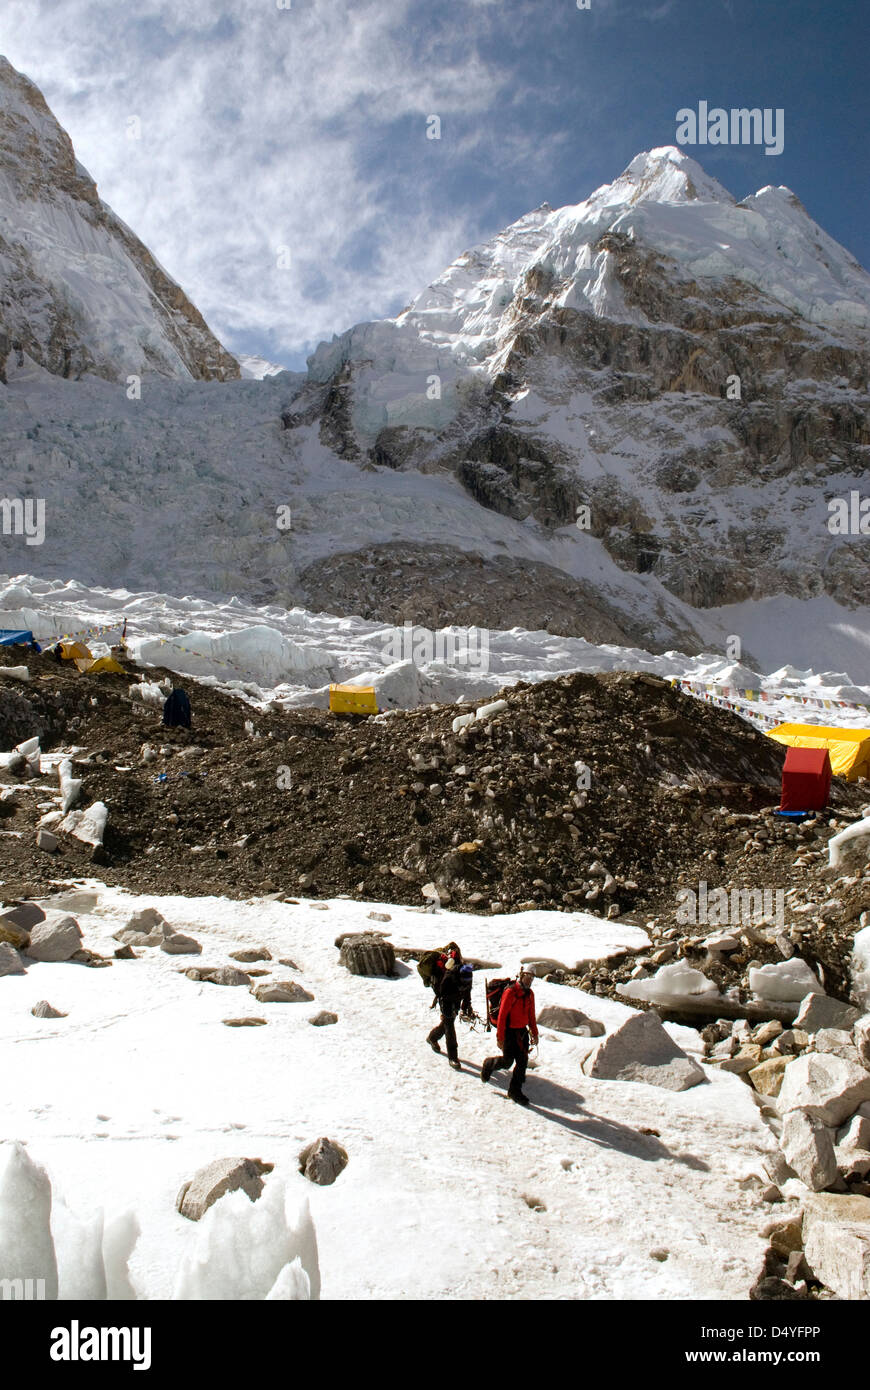 Nepal, Mount Everest. Climbers return to base camp after a day navigating the Khumbu Icefall at the base of Mount - Stock Image